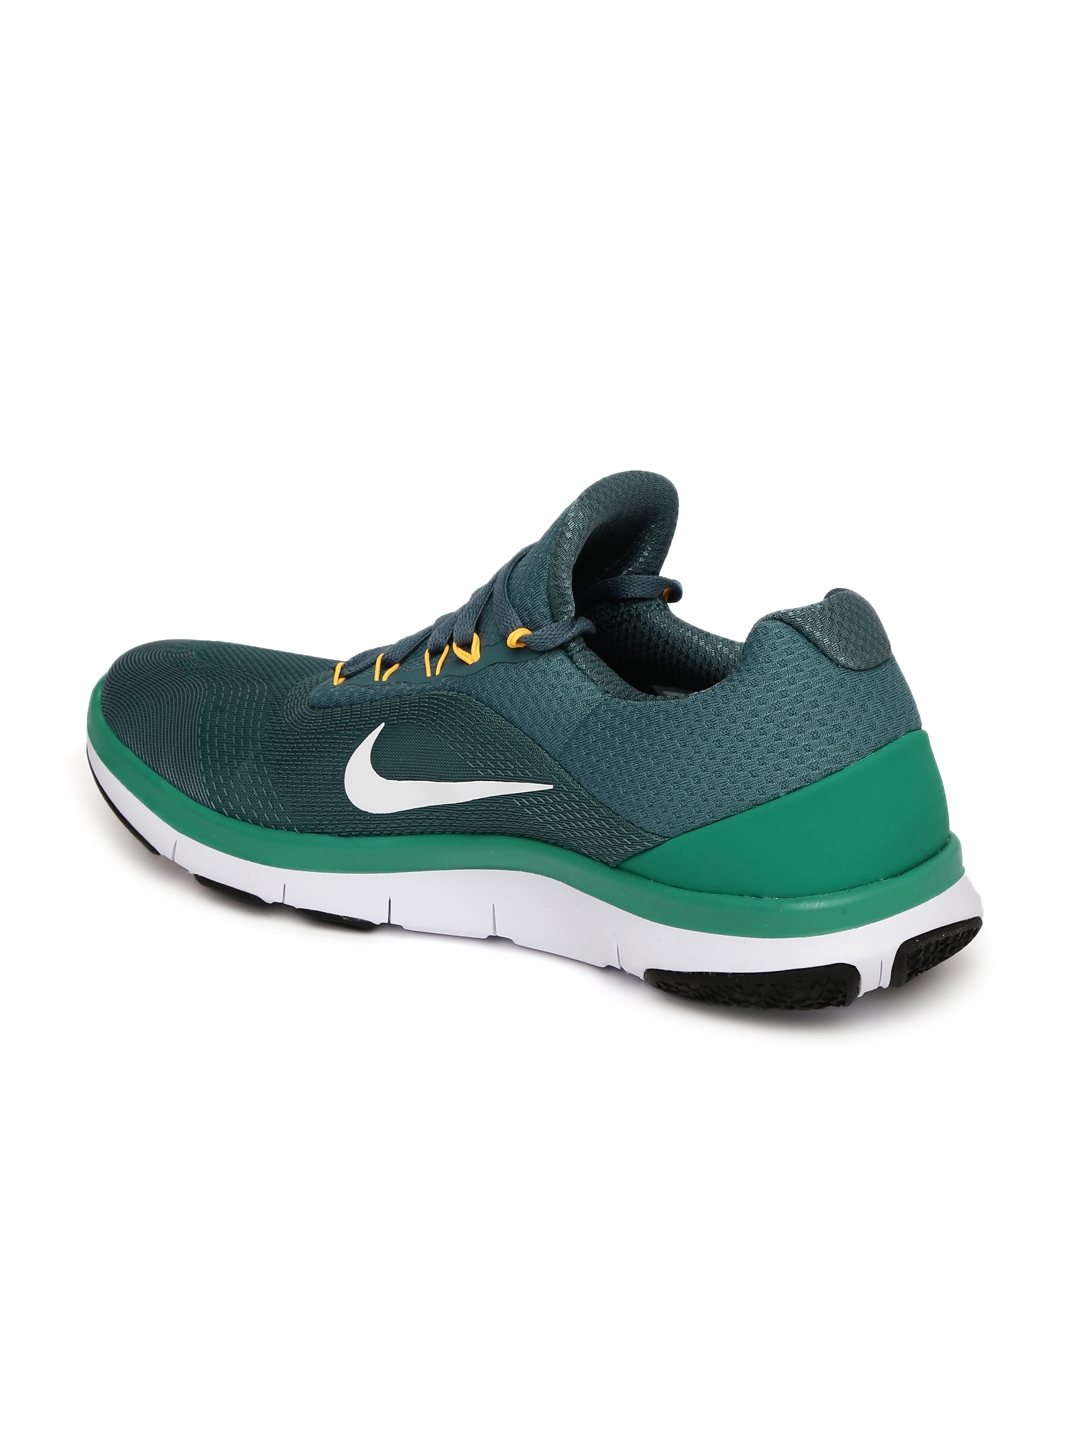 the best attitude f54aa 1a504 Nike Men Teal Green FREE TRAINER V7 Training Shoes